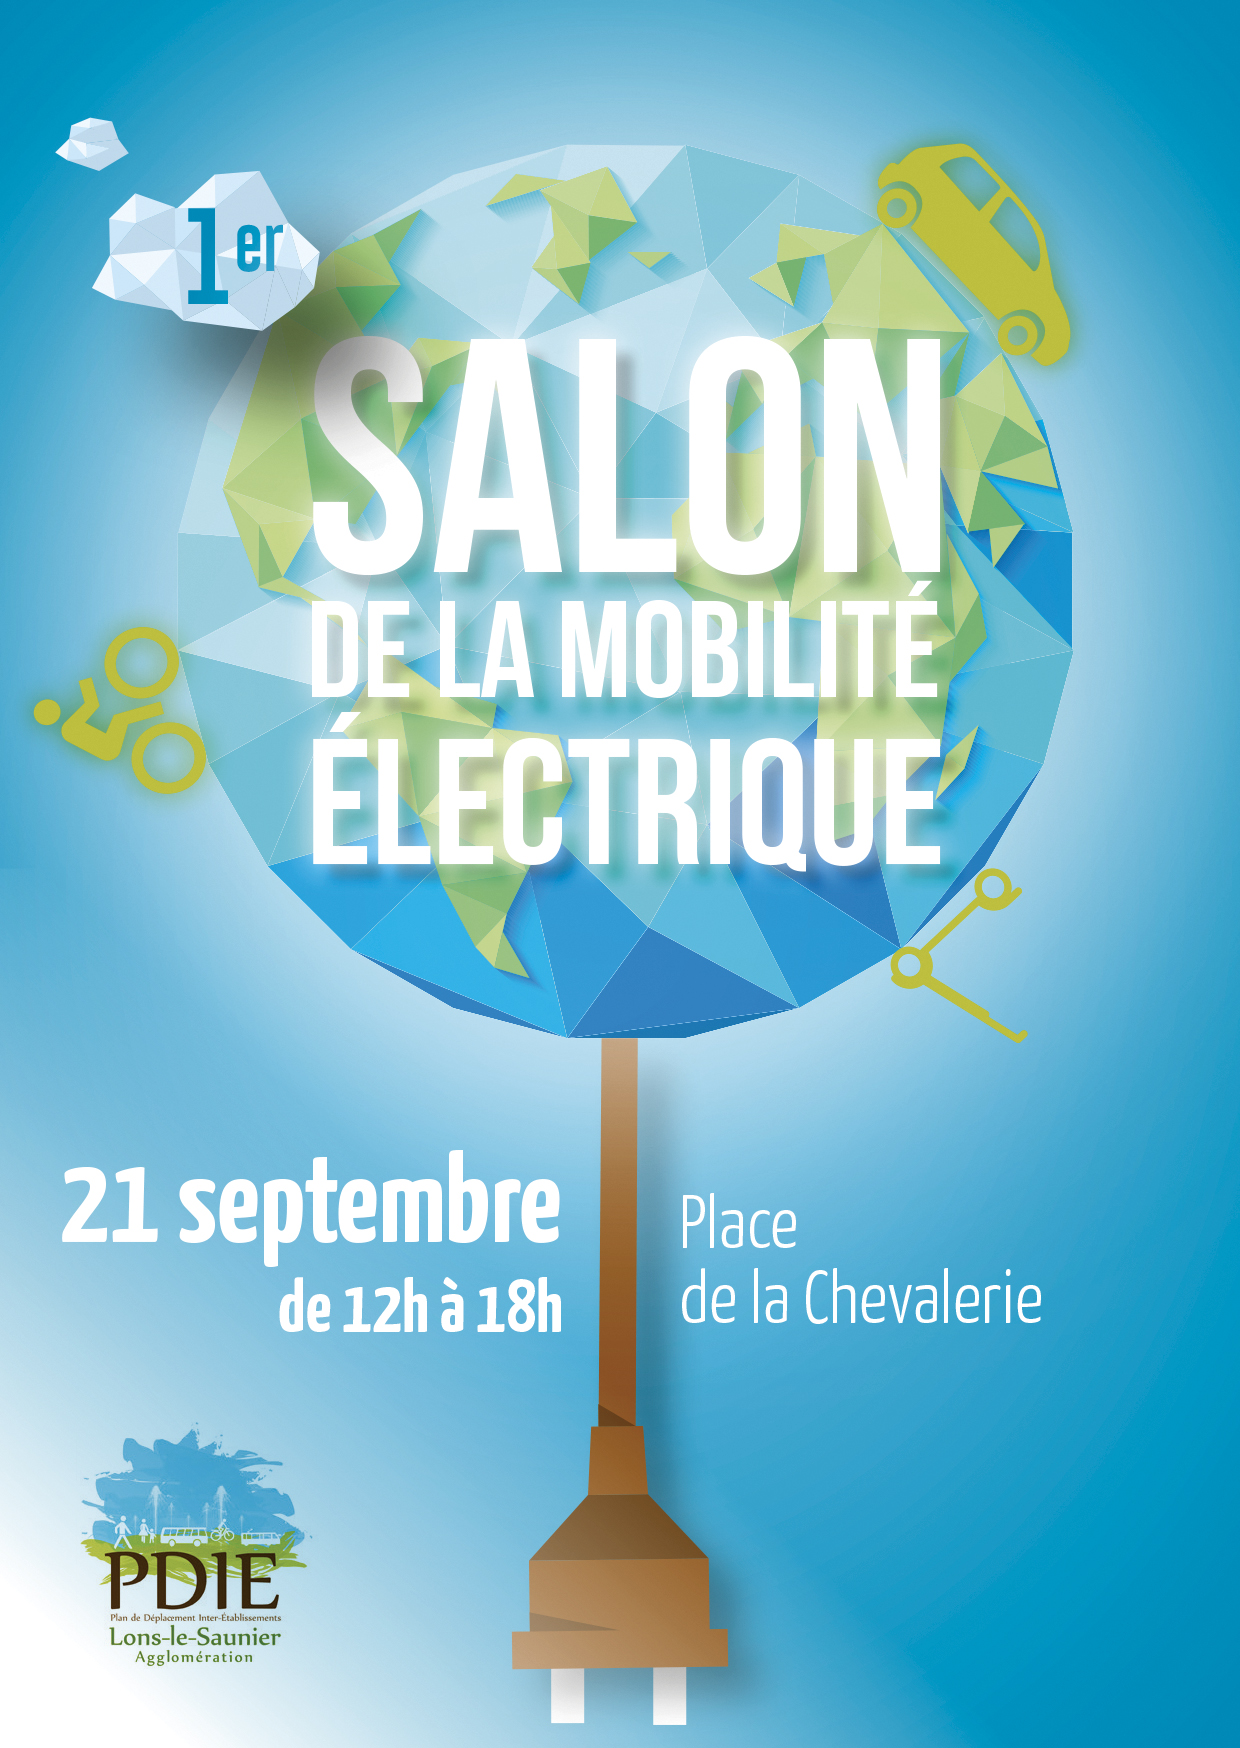 1er salon de la mobilit electrique mercredi 21 septembre lons le saunier. Black Bedroom Furniture Sets. Home Design Ideas